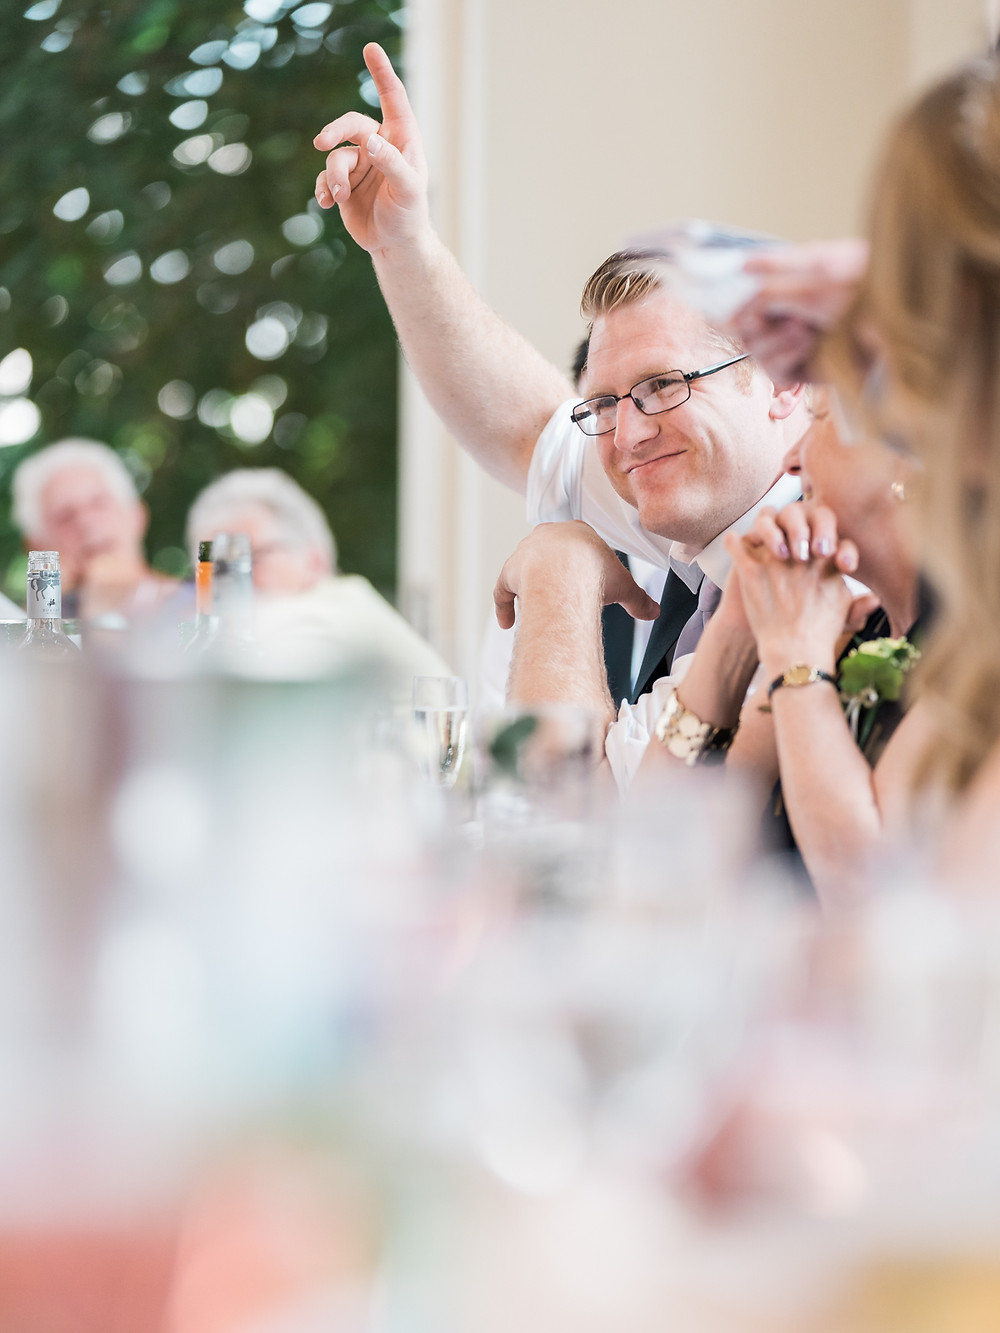 Groomsman at the top table of a wedding at Shottle Hall, Derbyshire. By Derbyshire wedding photographers.